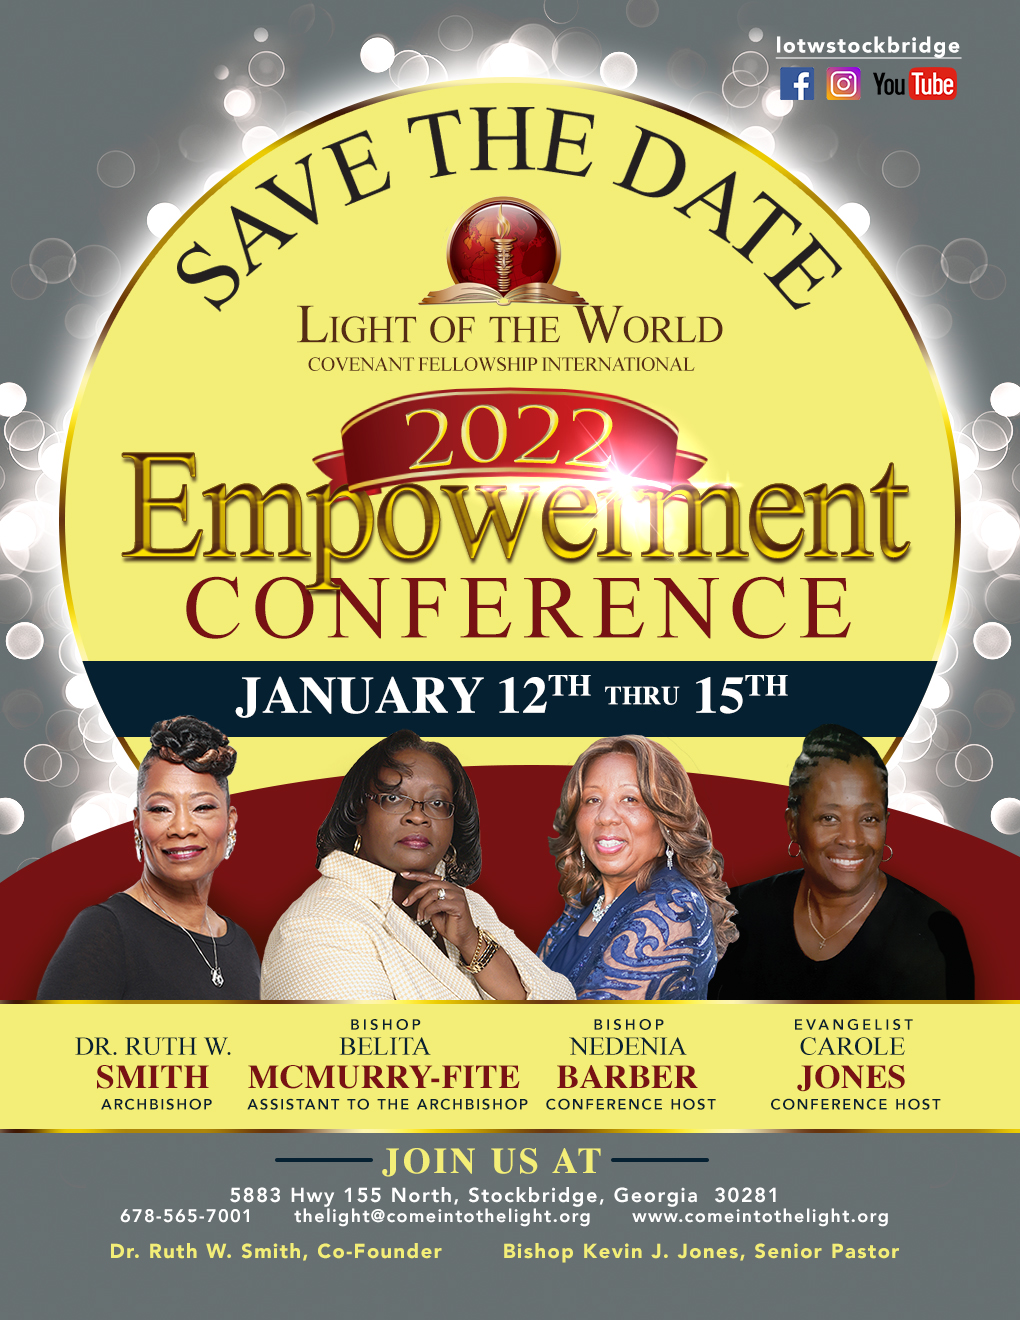 save the date flyer for the 2022 Empowerment Conference Jan 12 - 15 2022